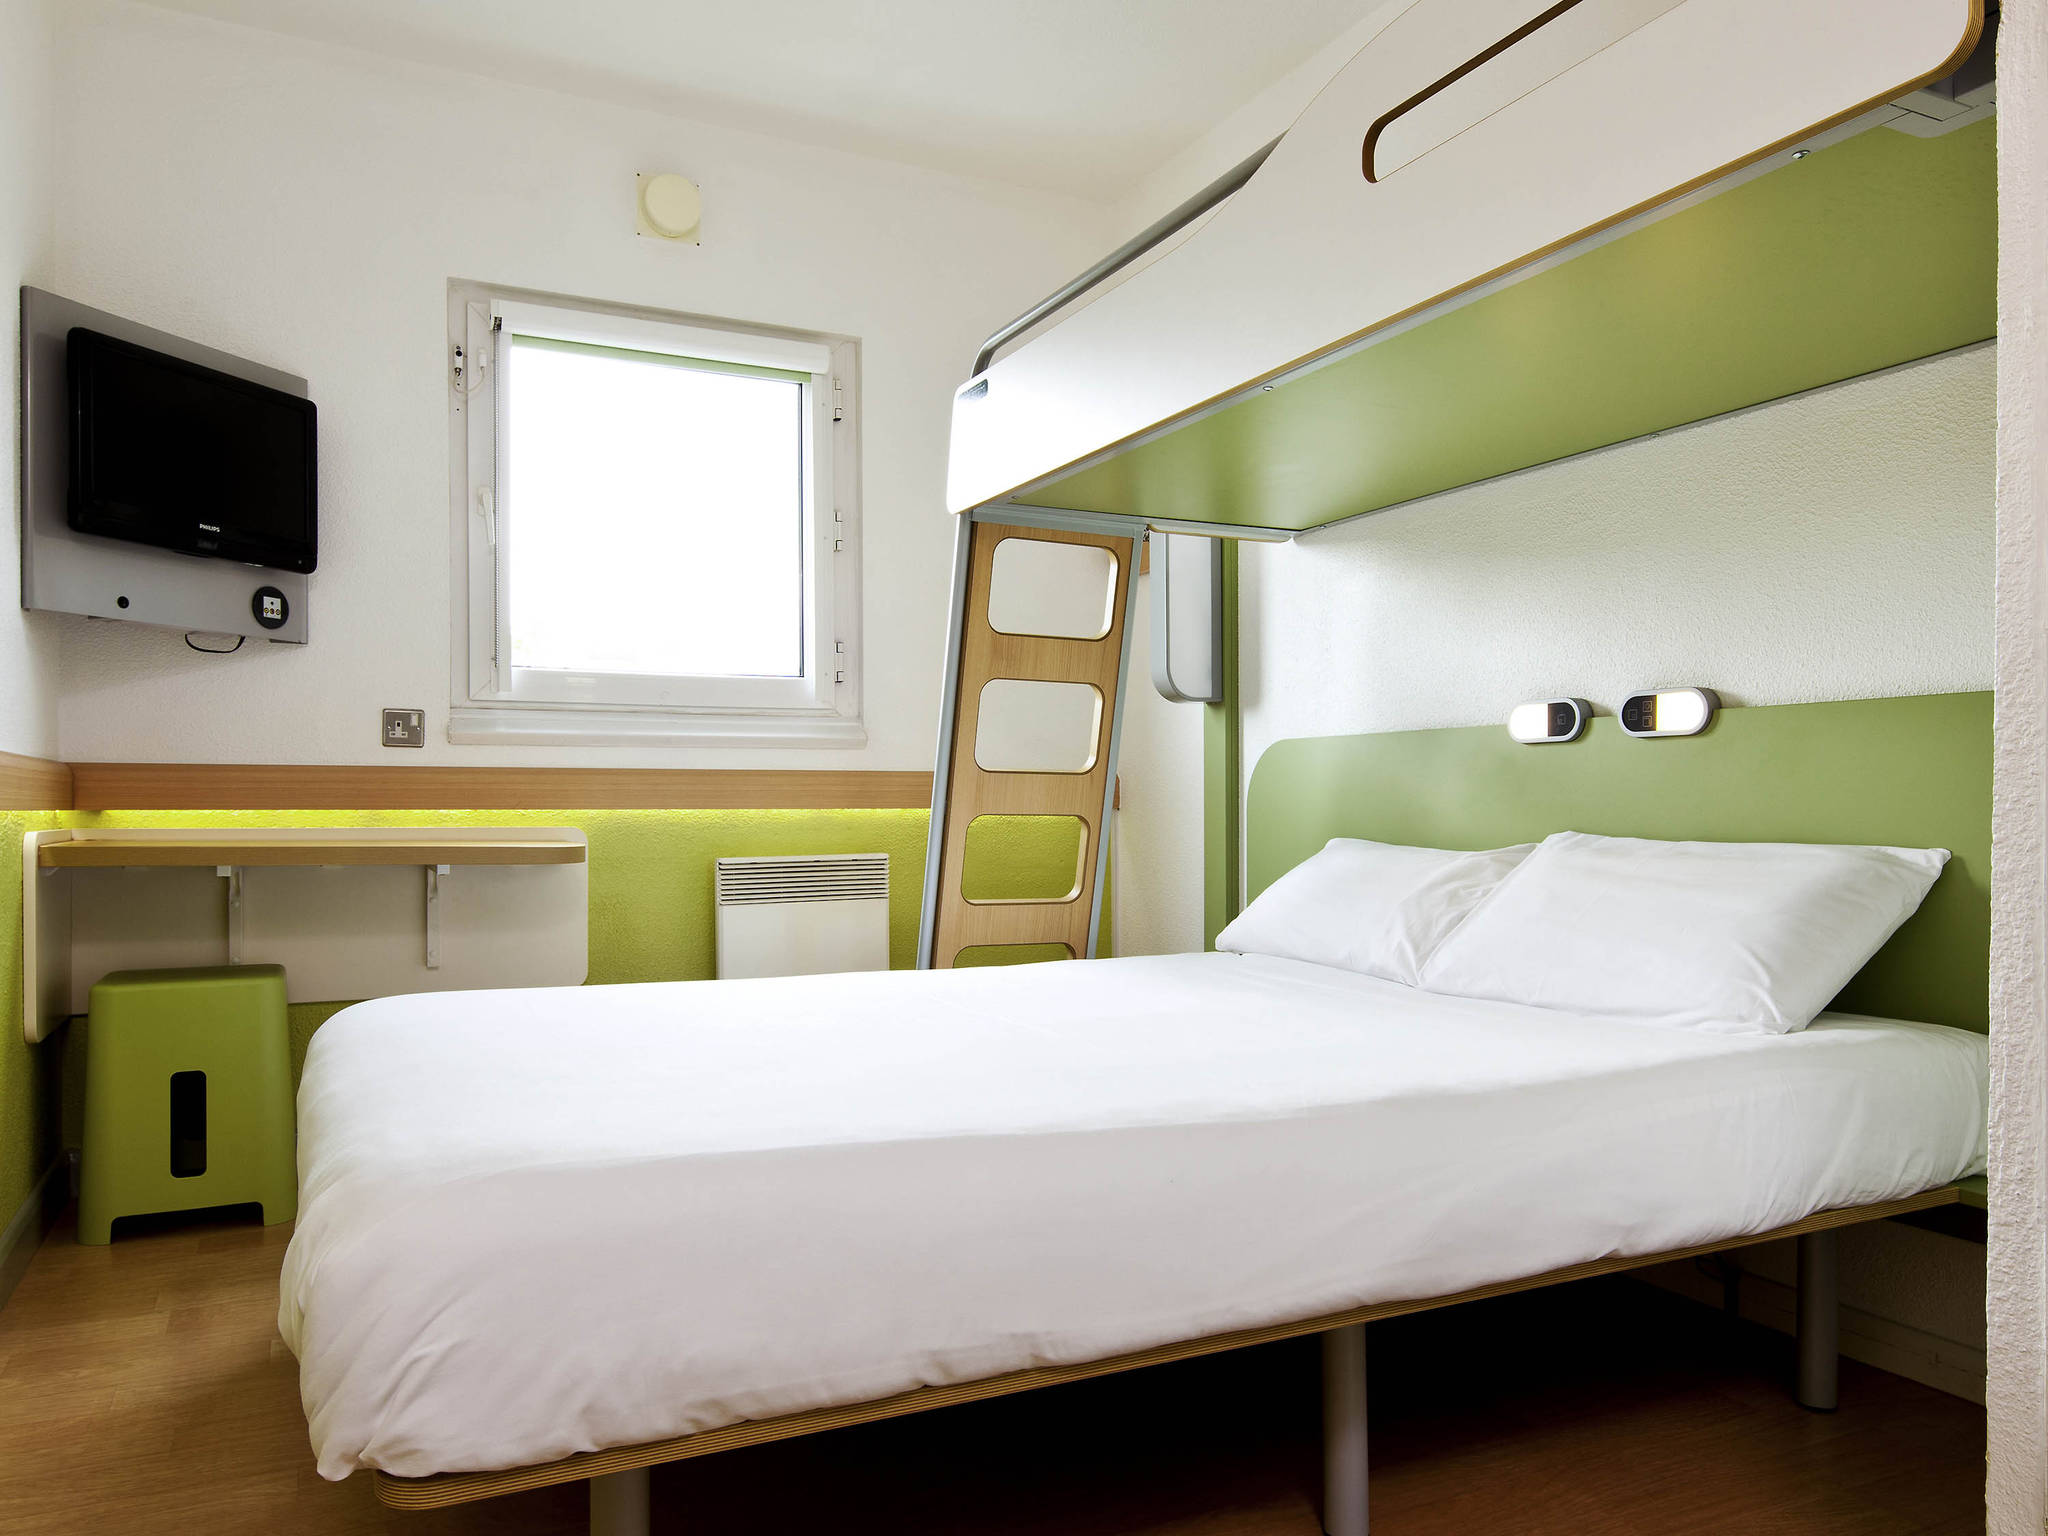 H tel londres ibis budget a roport de londres city for Hotel adagio londres